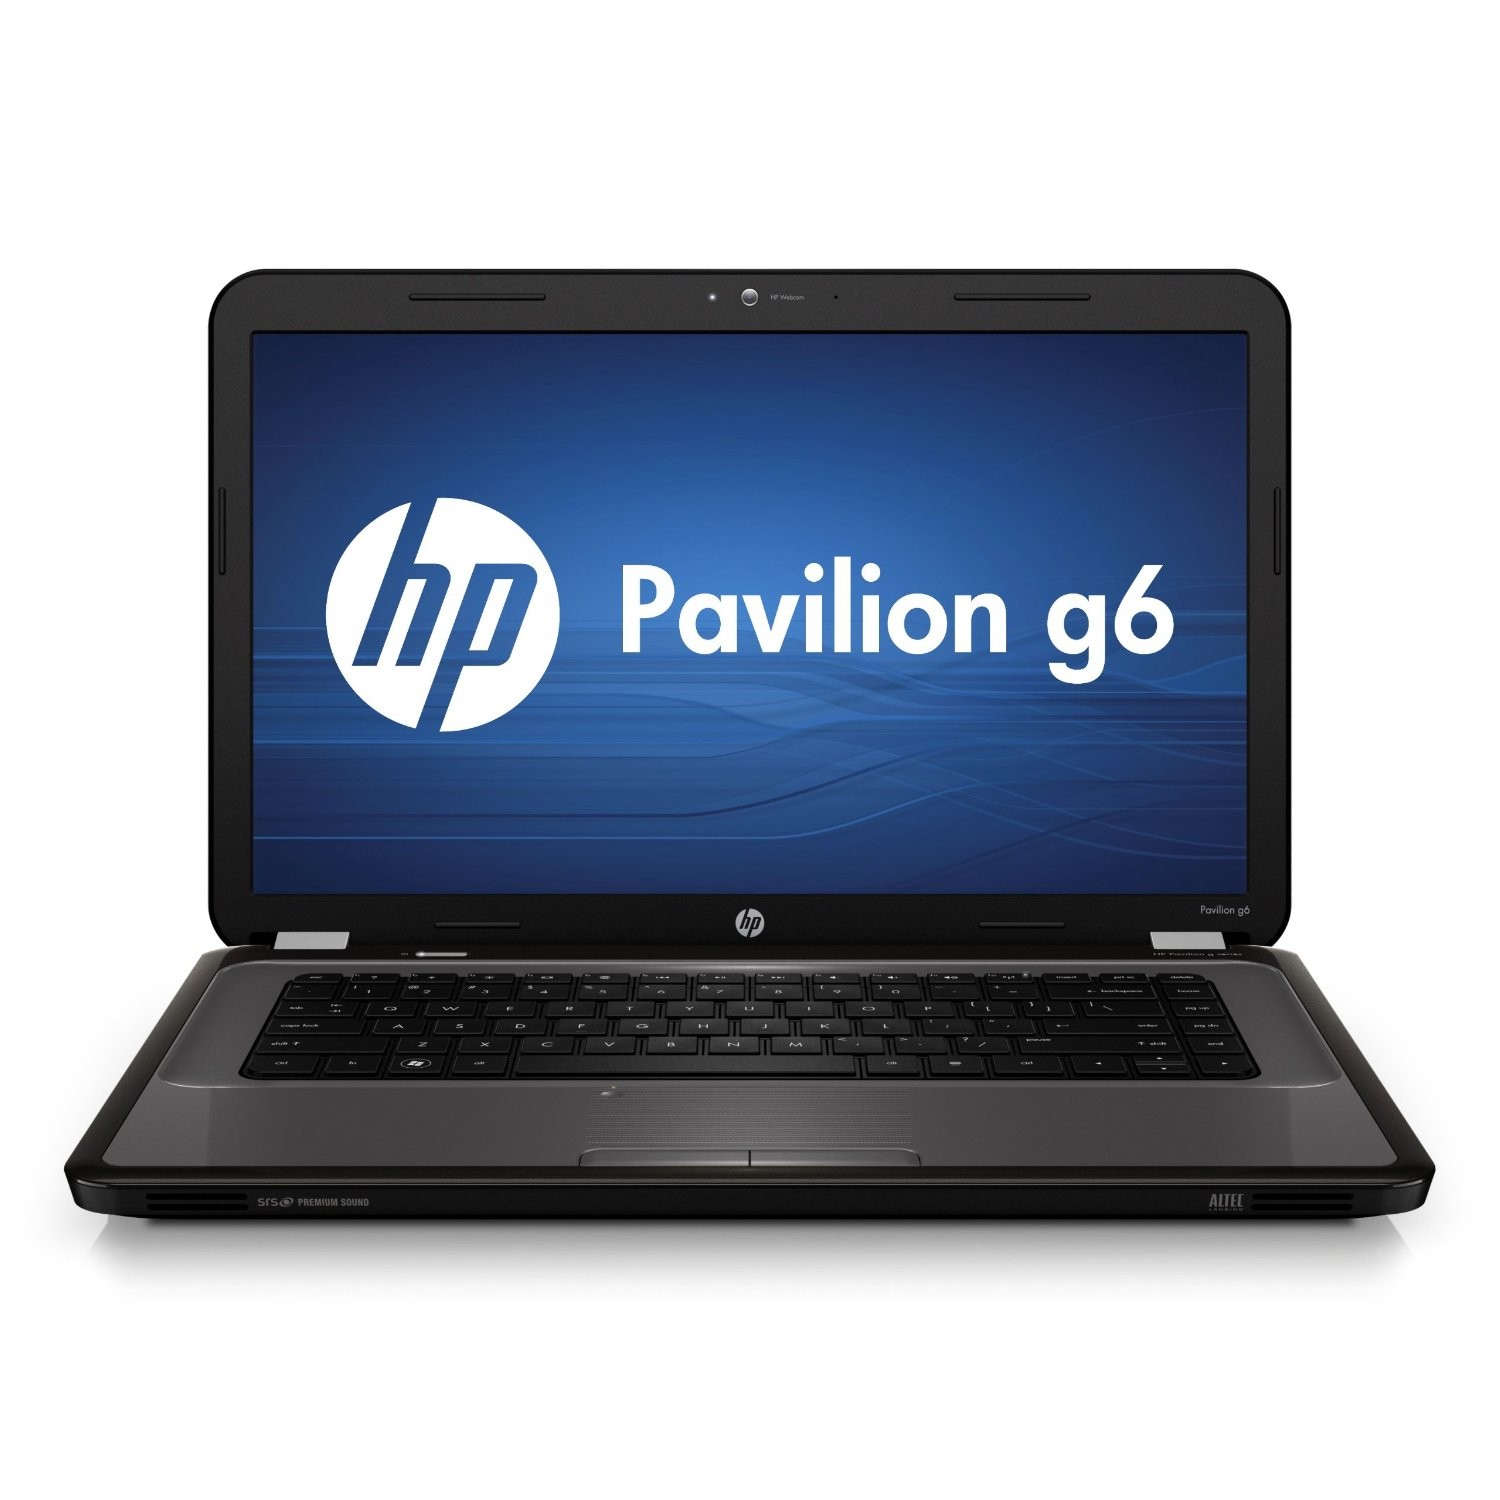 Best HP Pavilion g61d80nr 15.6Inch Laptop Deals Todays